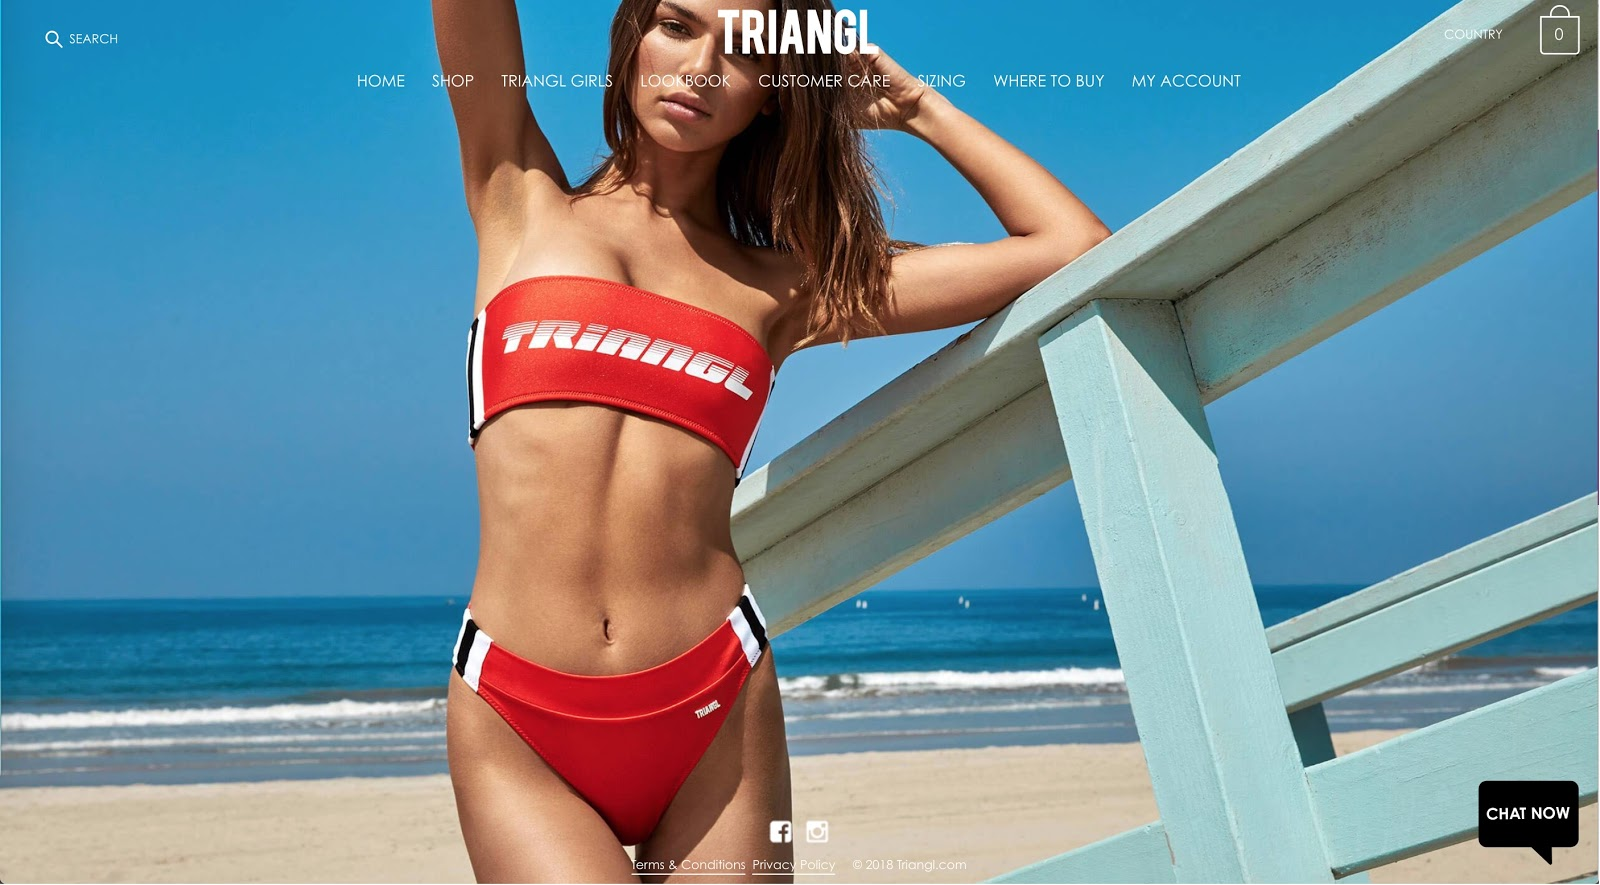 Screenshot showing a landing page featuring a bikini model